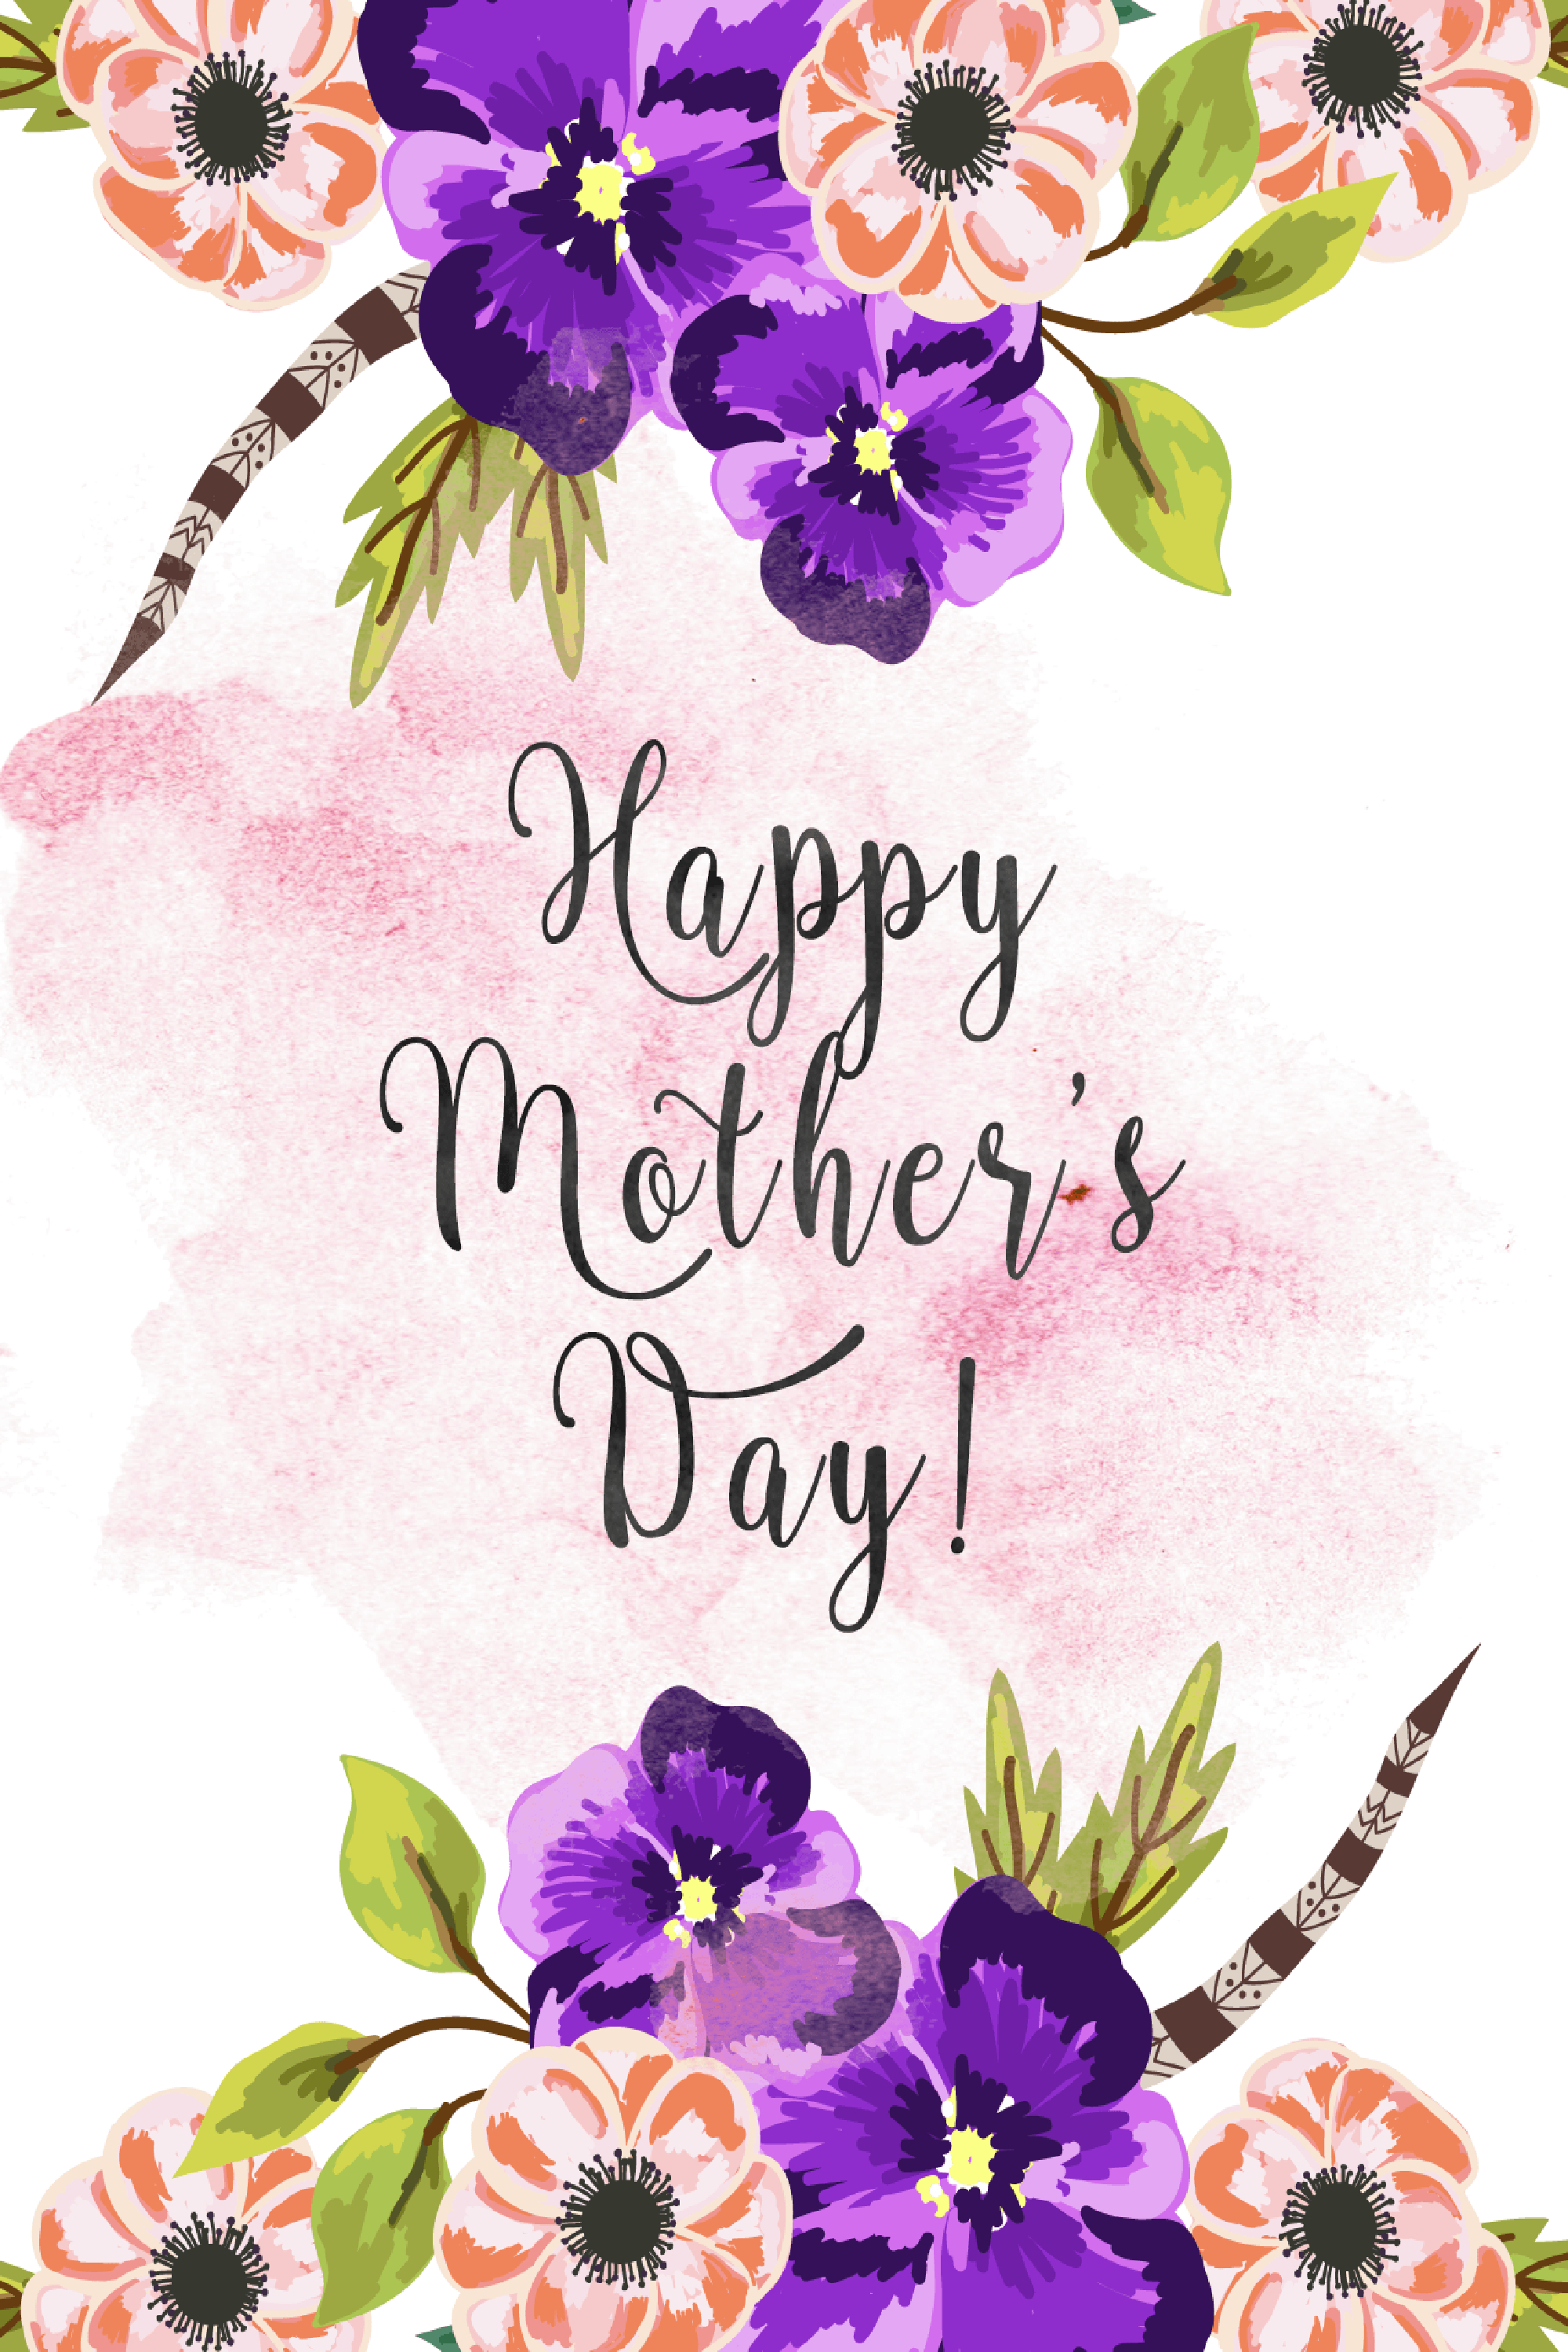 20 Cute Free Printable Mothers Day Cards - Mom Cards You Can Print - Free Printable Mothers Day Cards To My Wife